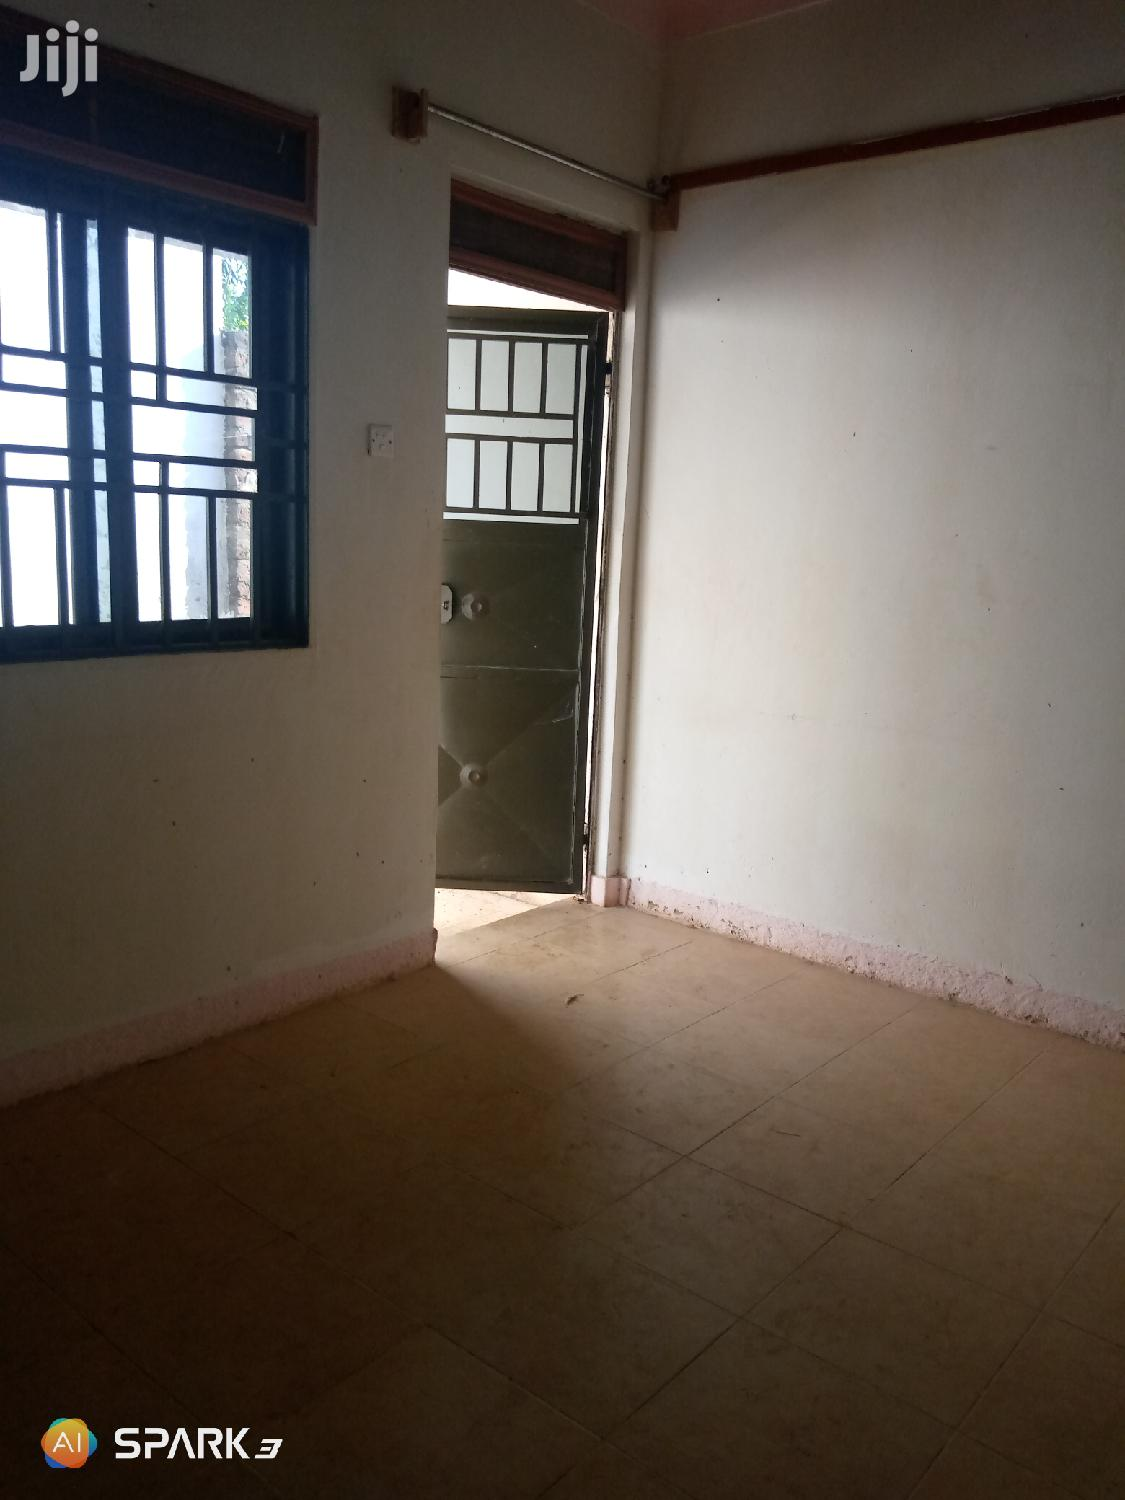 Big Single Room For Rent In Bweyogerere   Houses & Apartments For Rent for sale in Wakiso, Central Region, Uganda